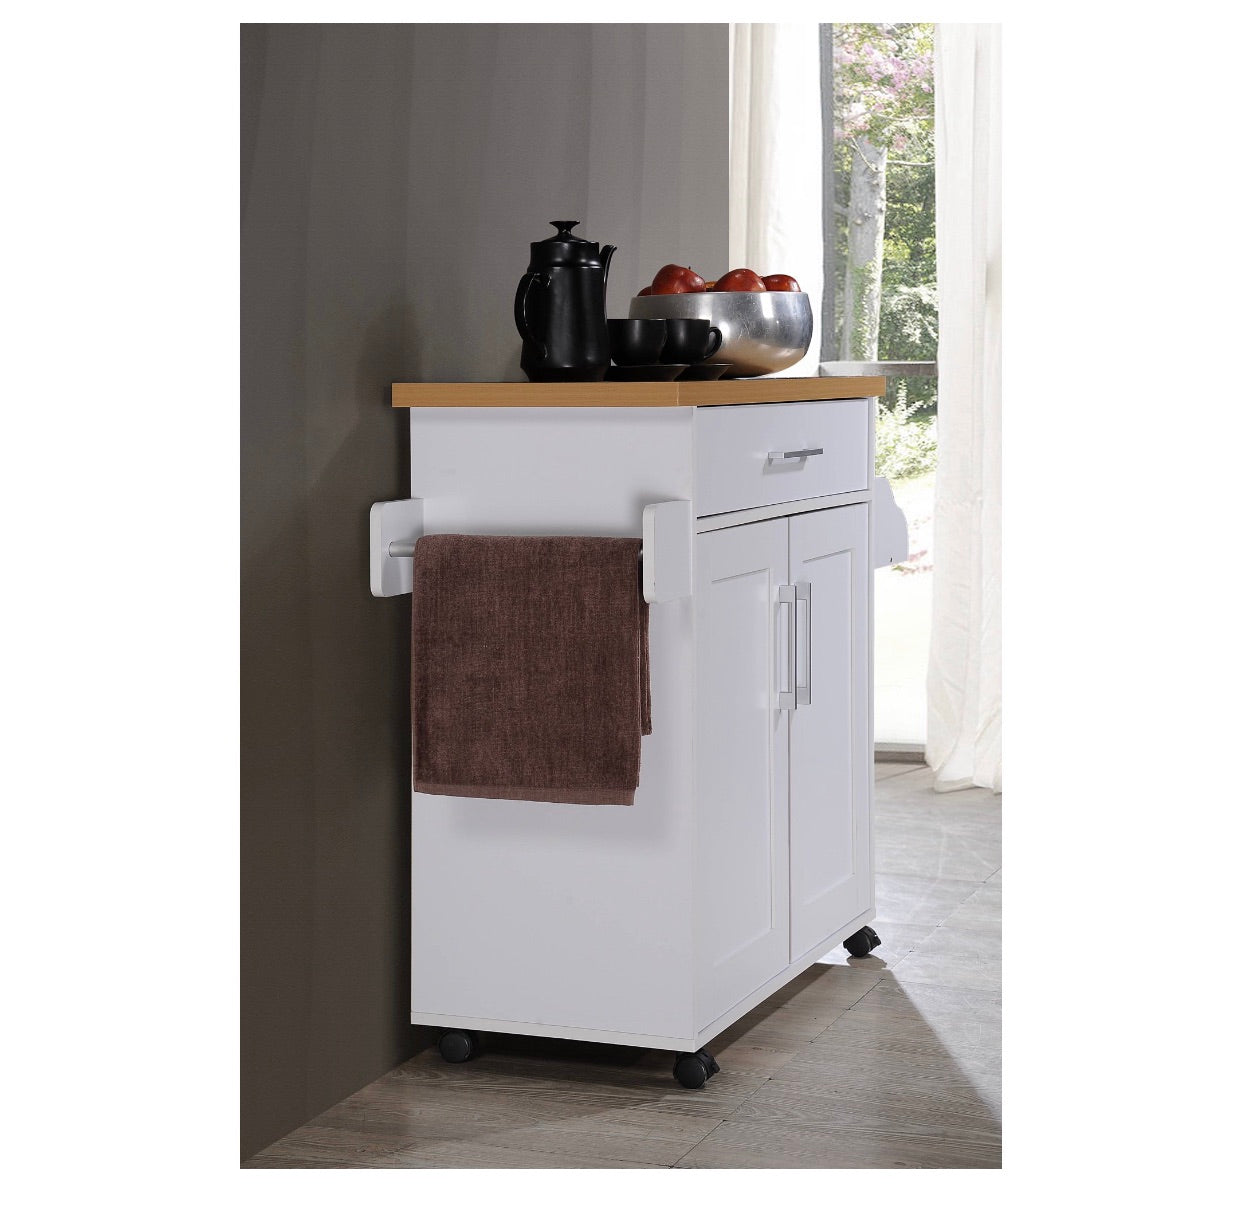 Cart kitchen cabinet Rolling